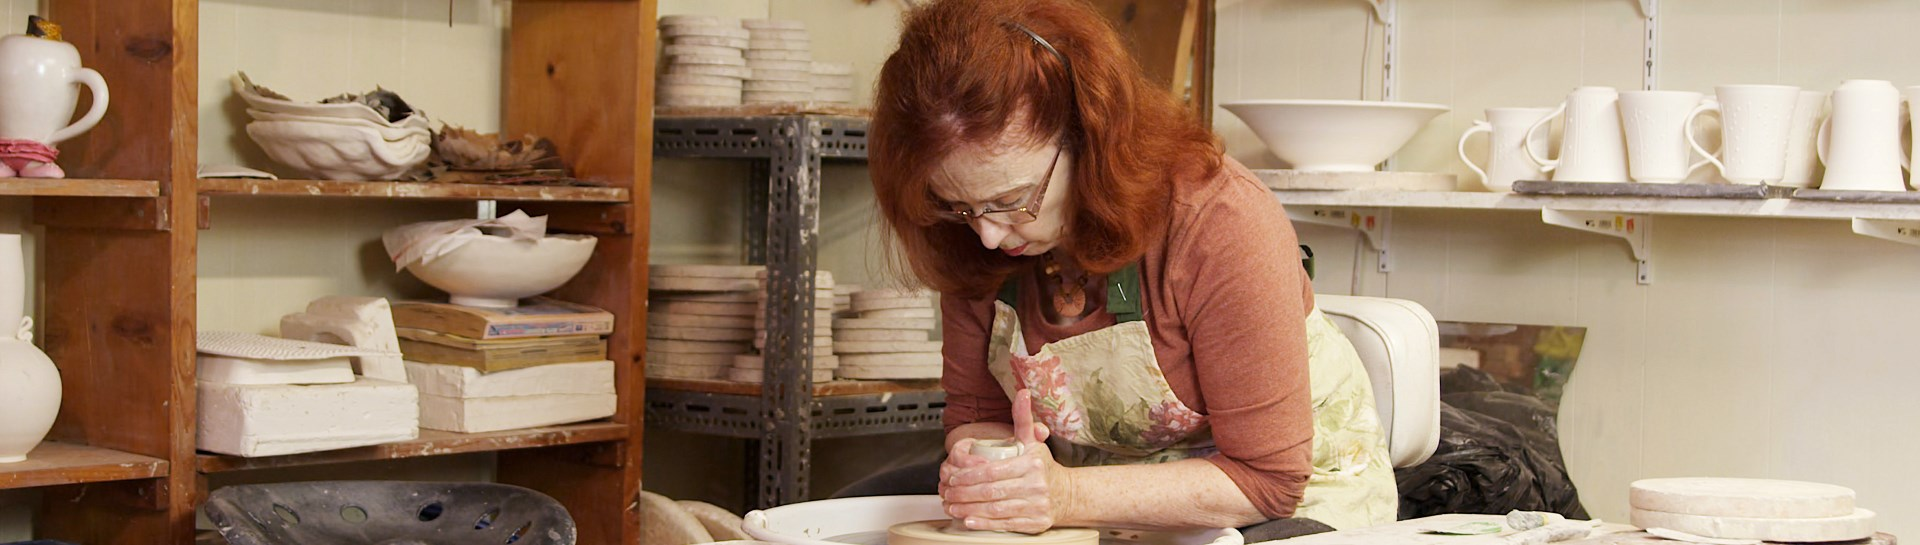 Woman working on pottery piece in her studio